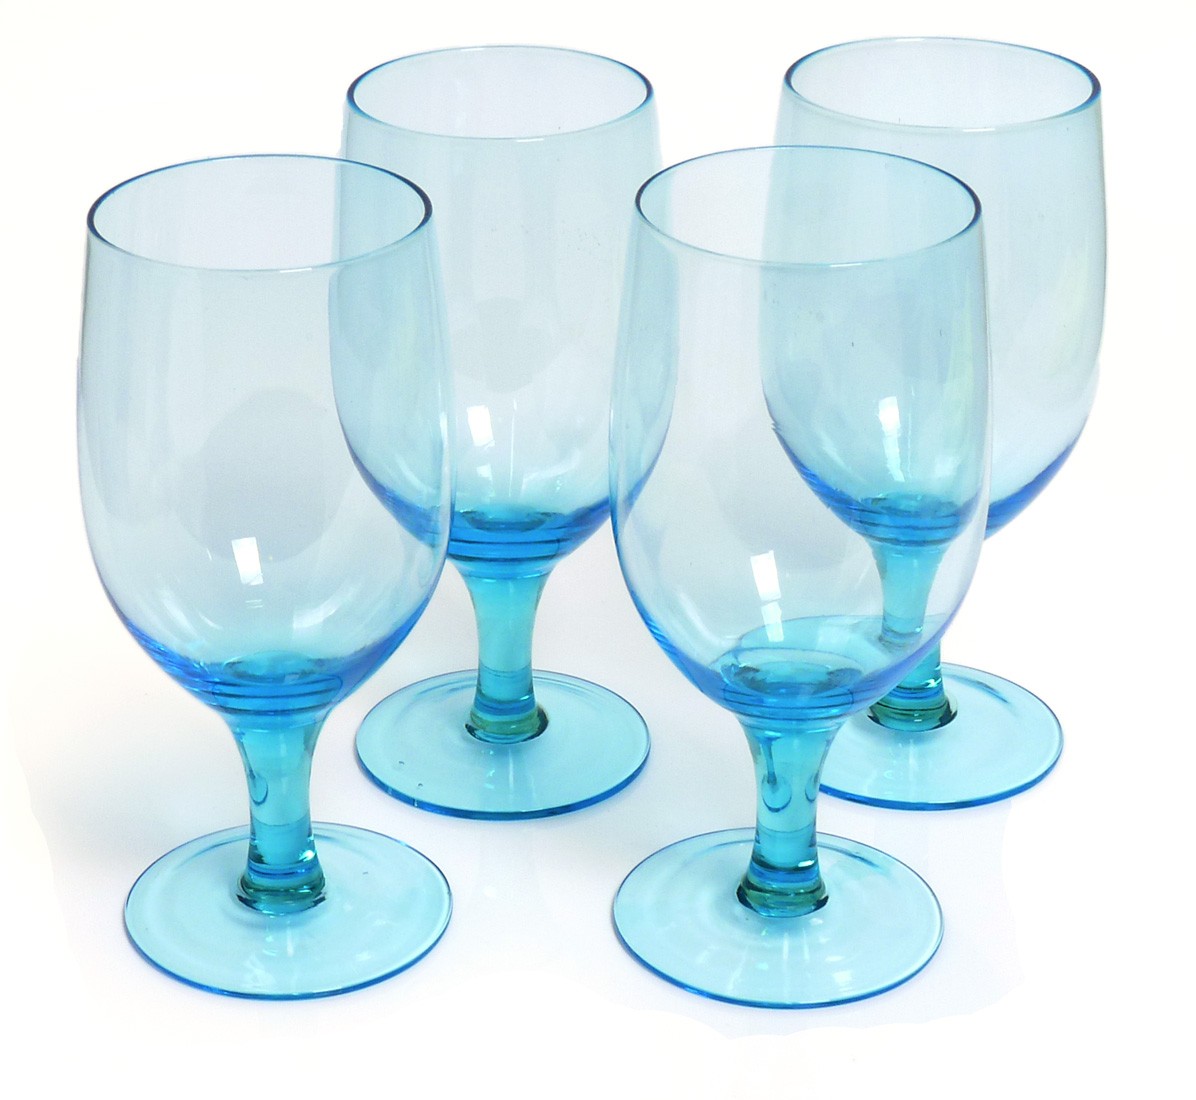 Image of Handcrafted Goblets, 16-ounce, Turquoise Blue, Set of 6